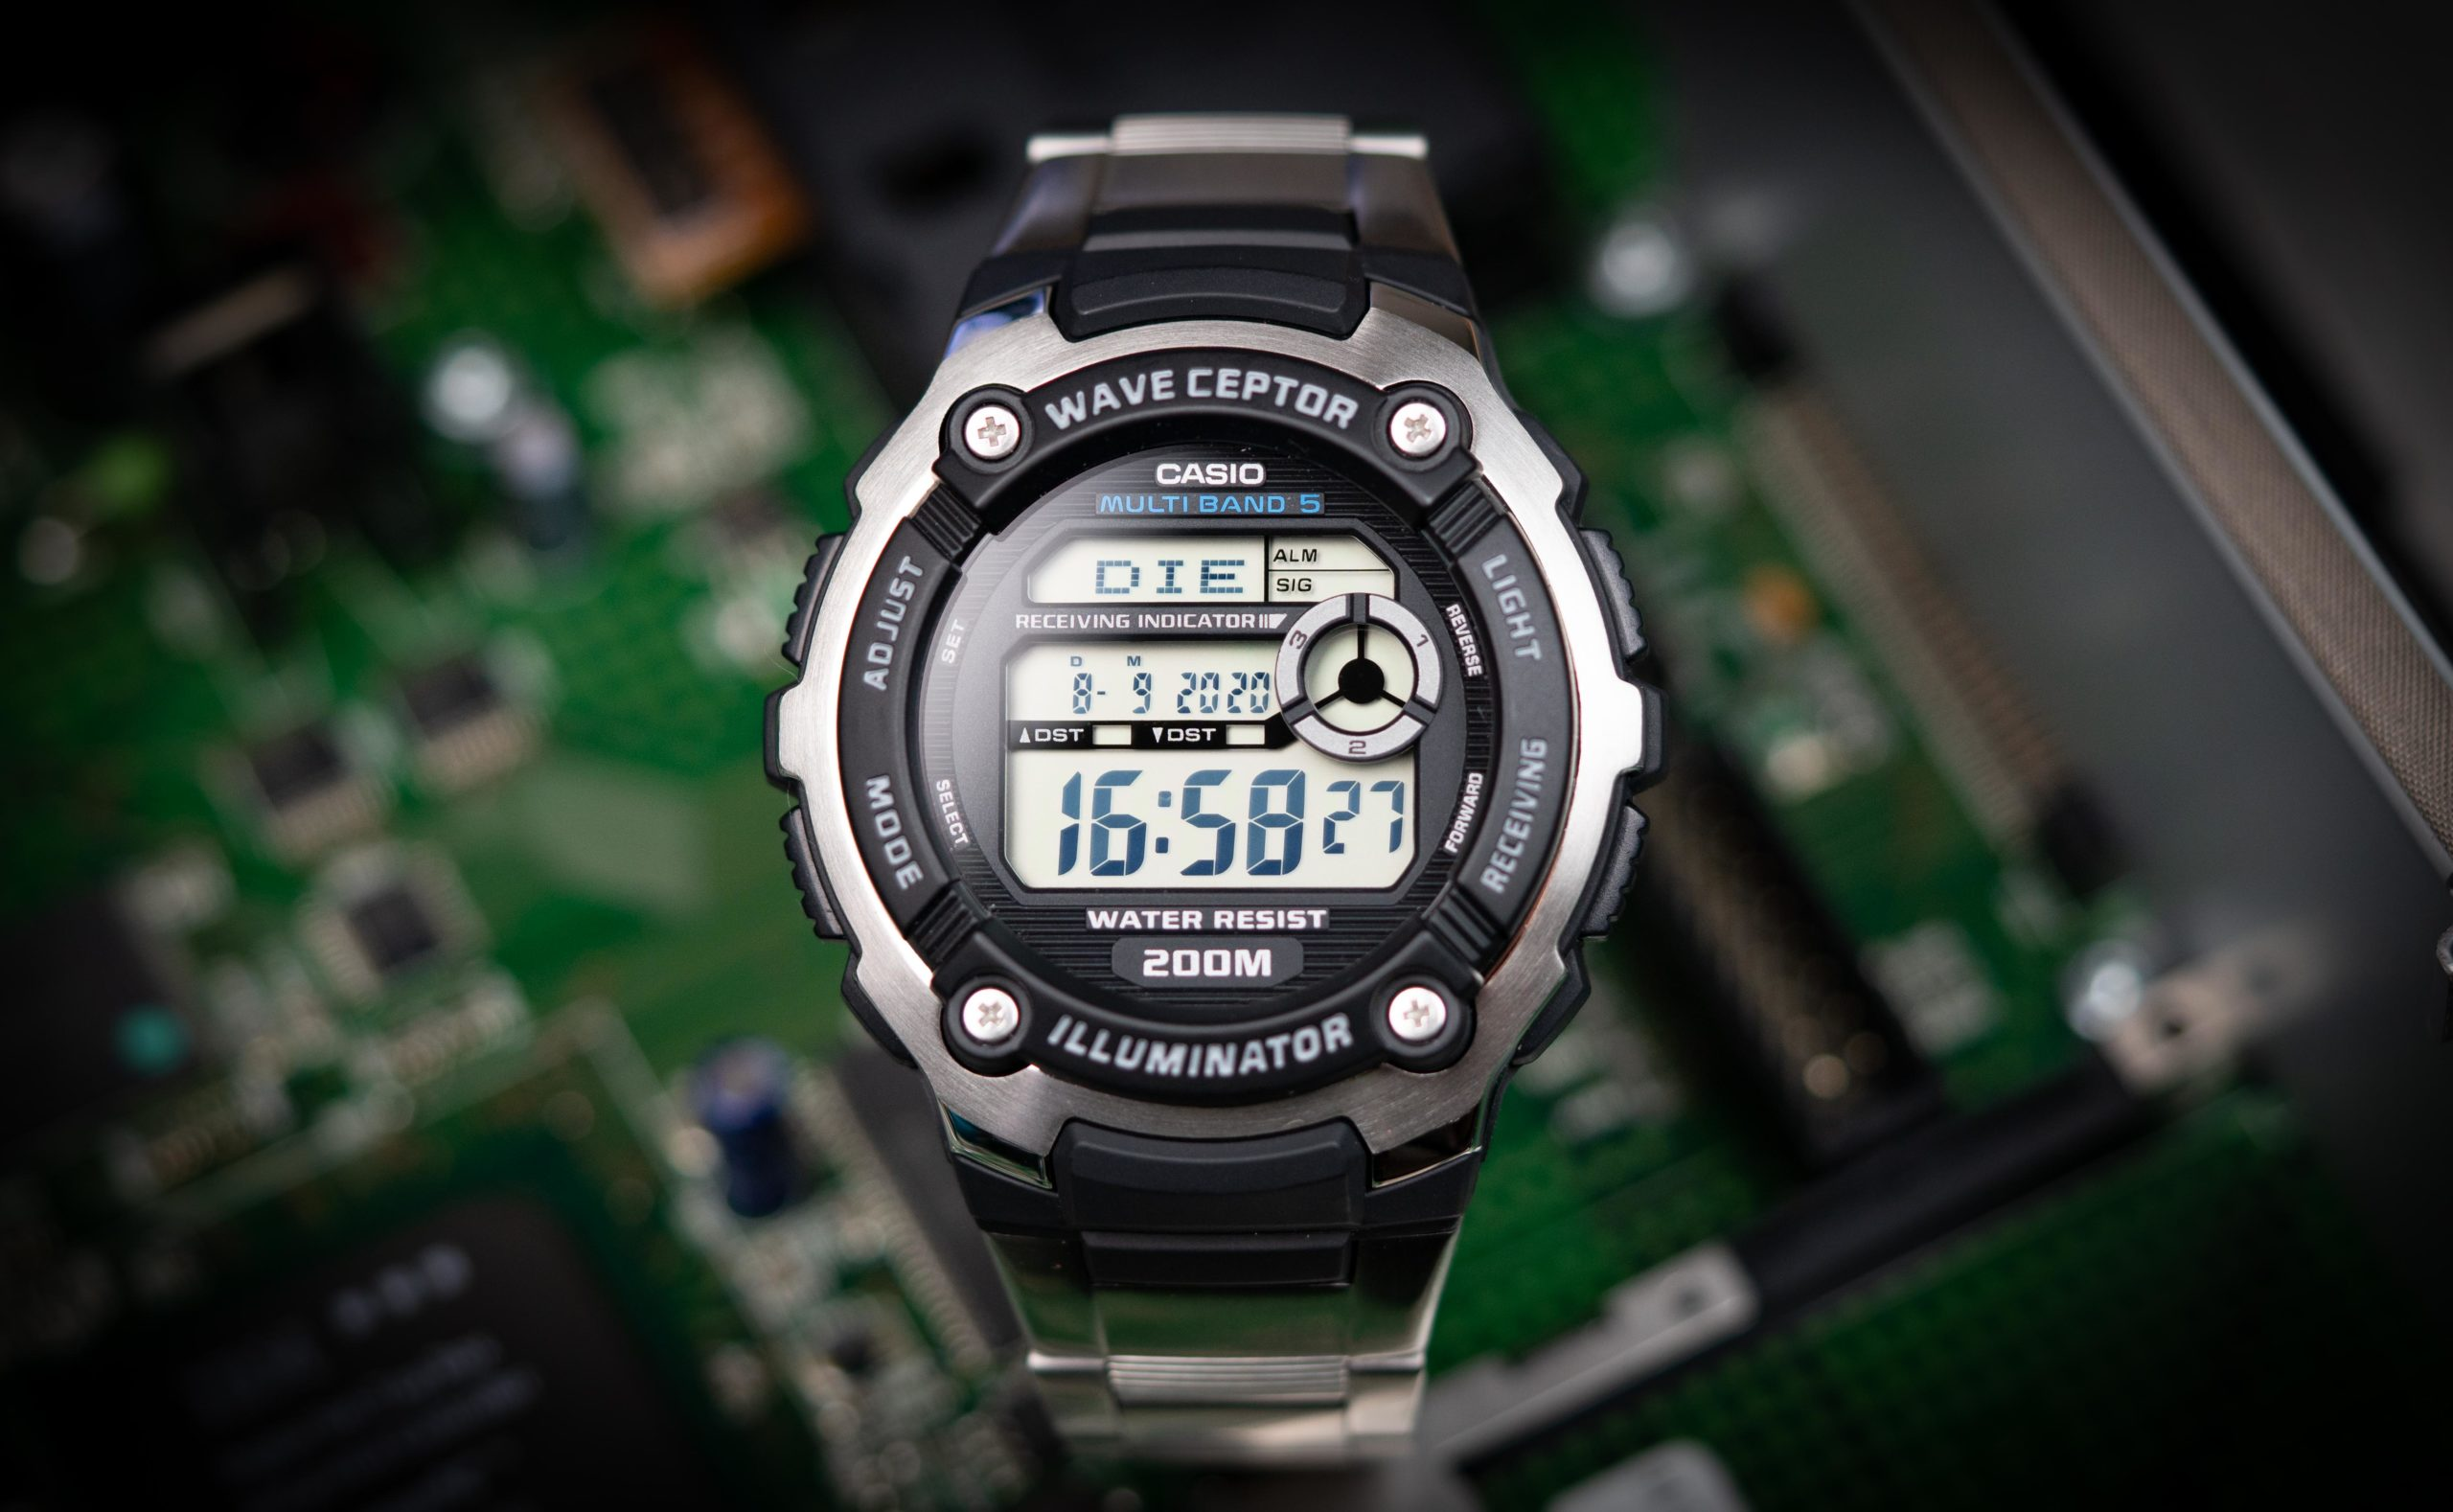 Casio Wave Ceptor Funkuhr-Test